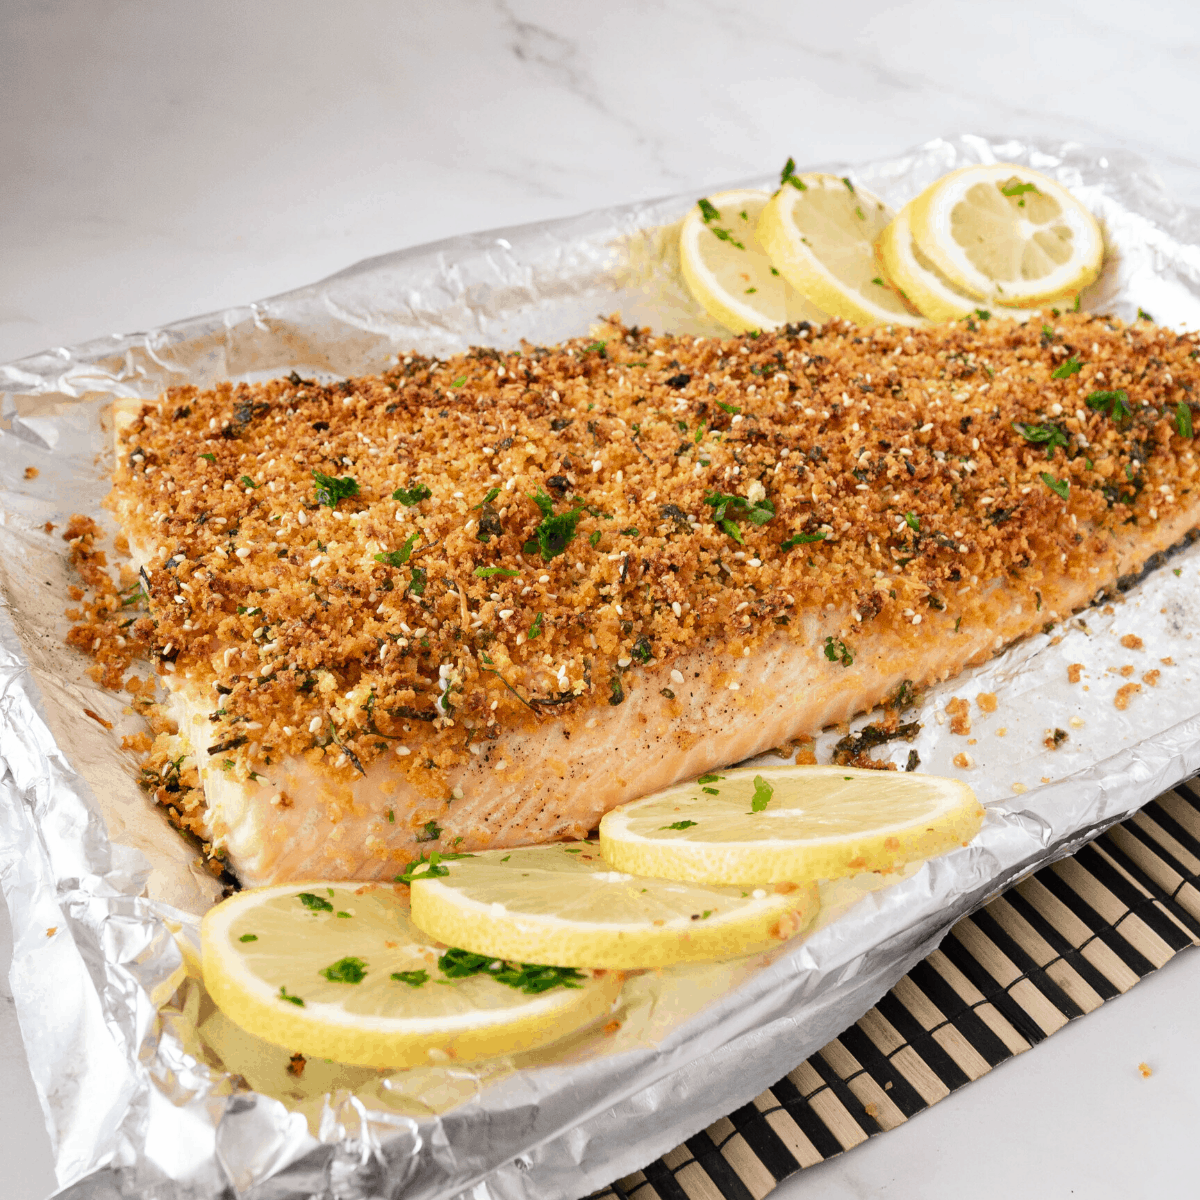 A baking tray with salmon baked.